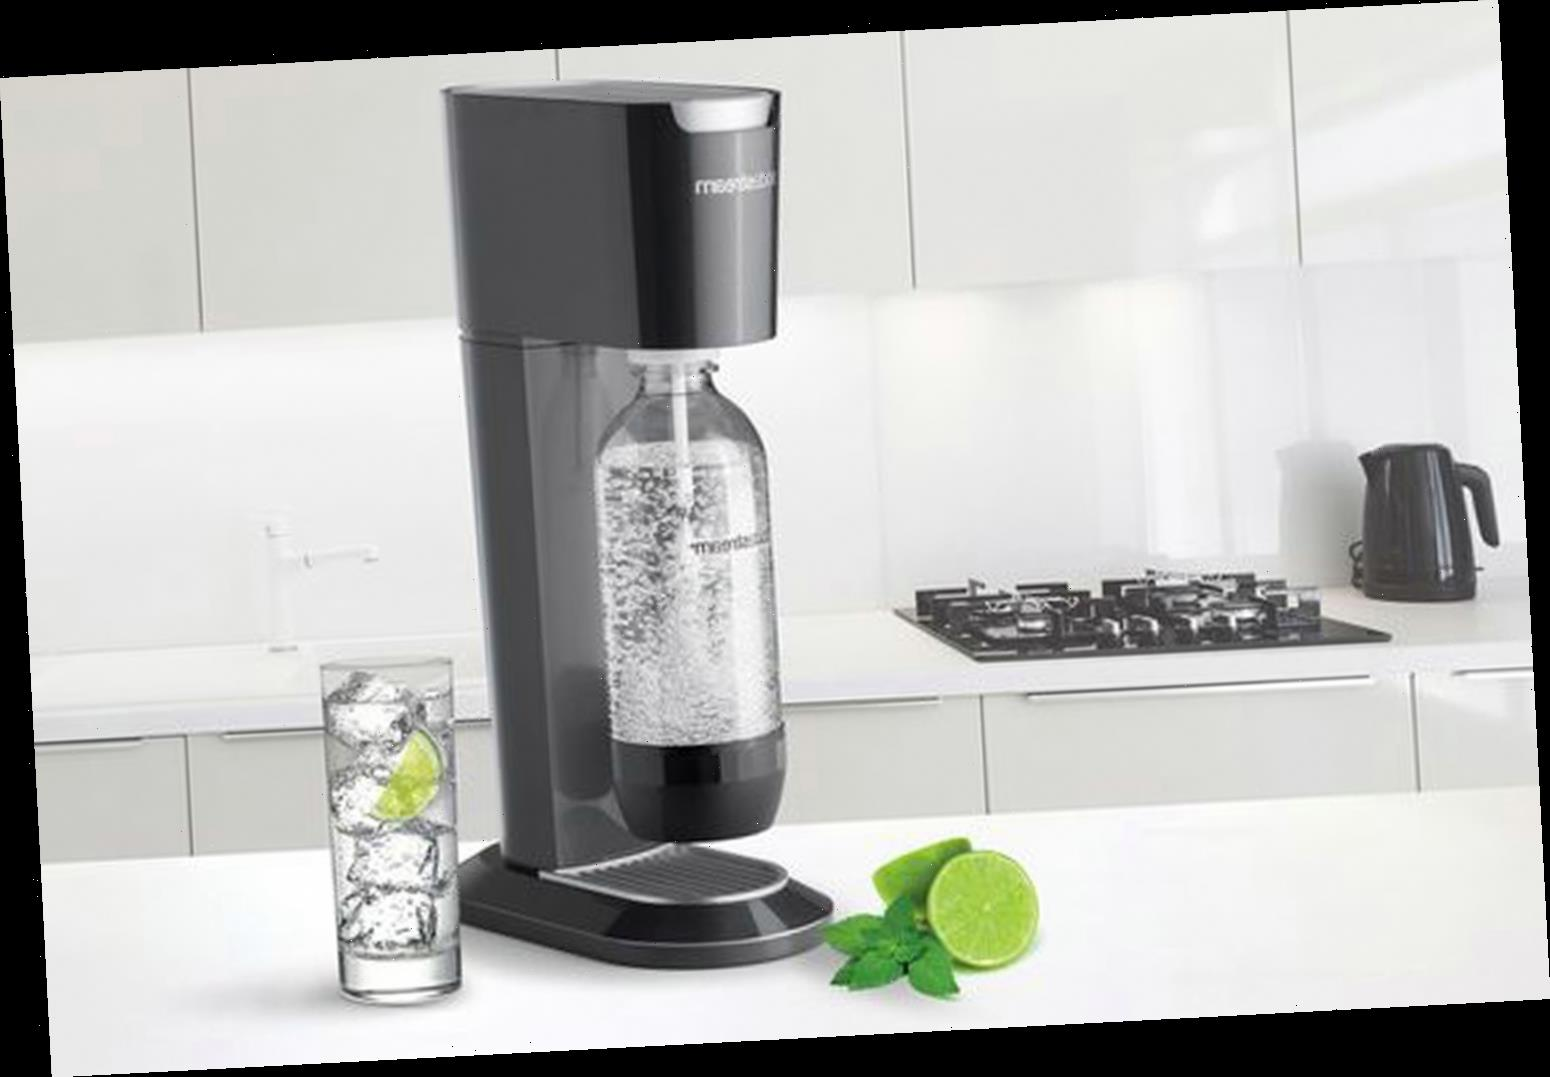 SodaStream's Sparkling Water Maker is now half price thanks to Currys Black Friday offer